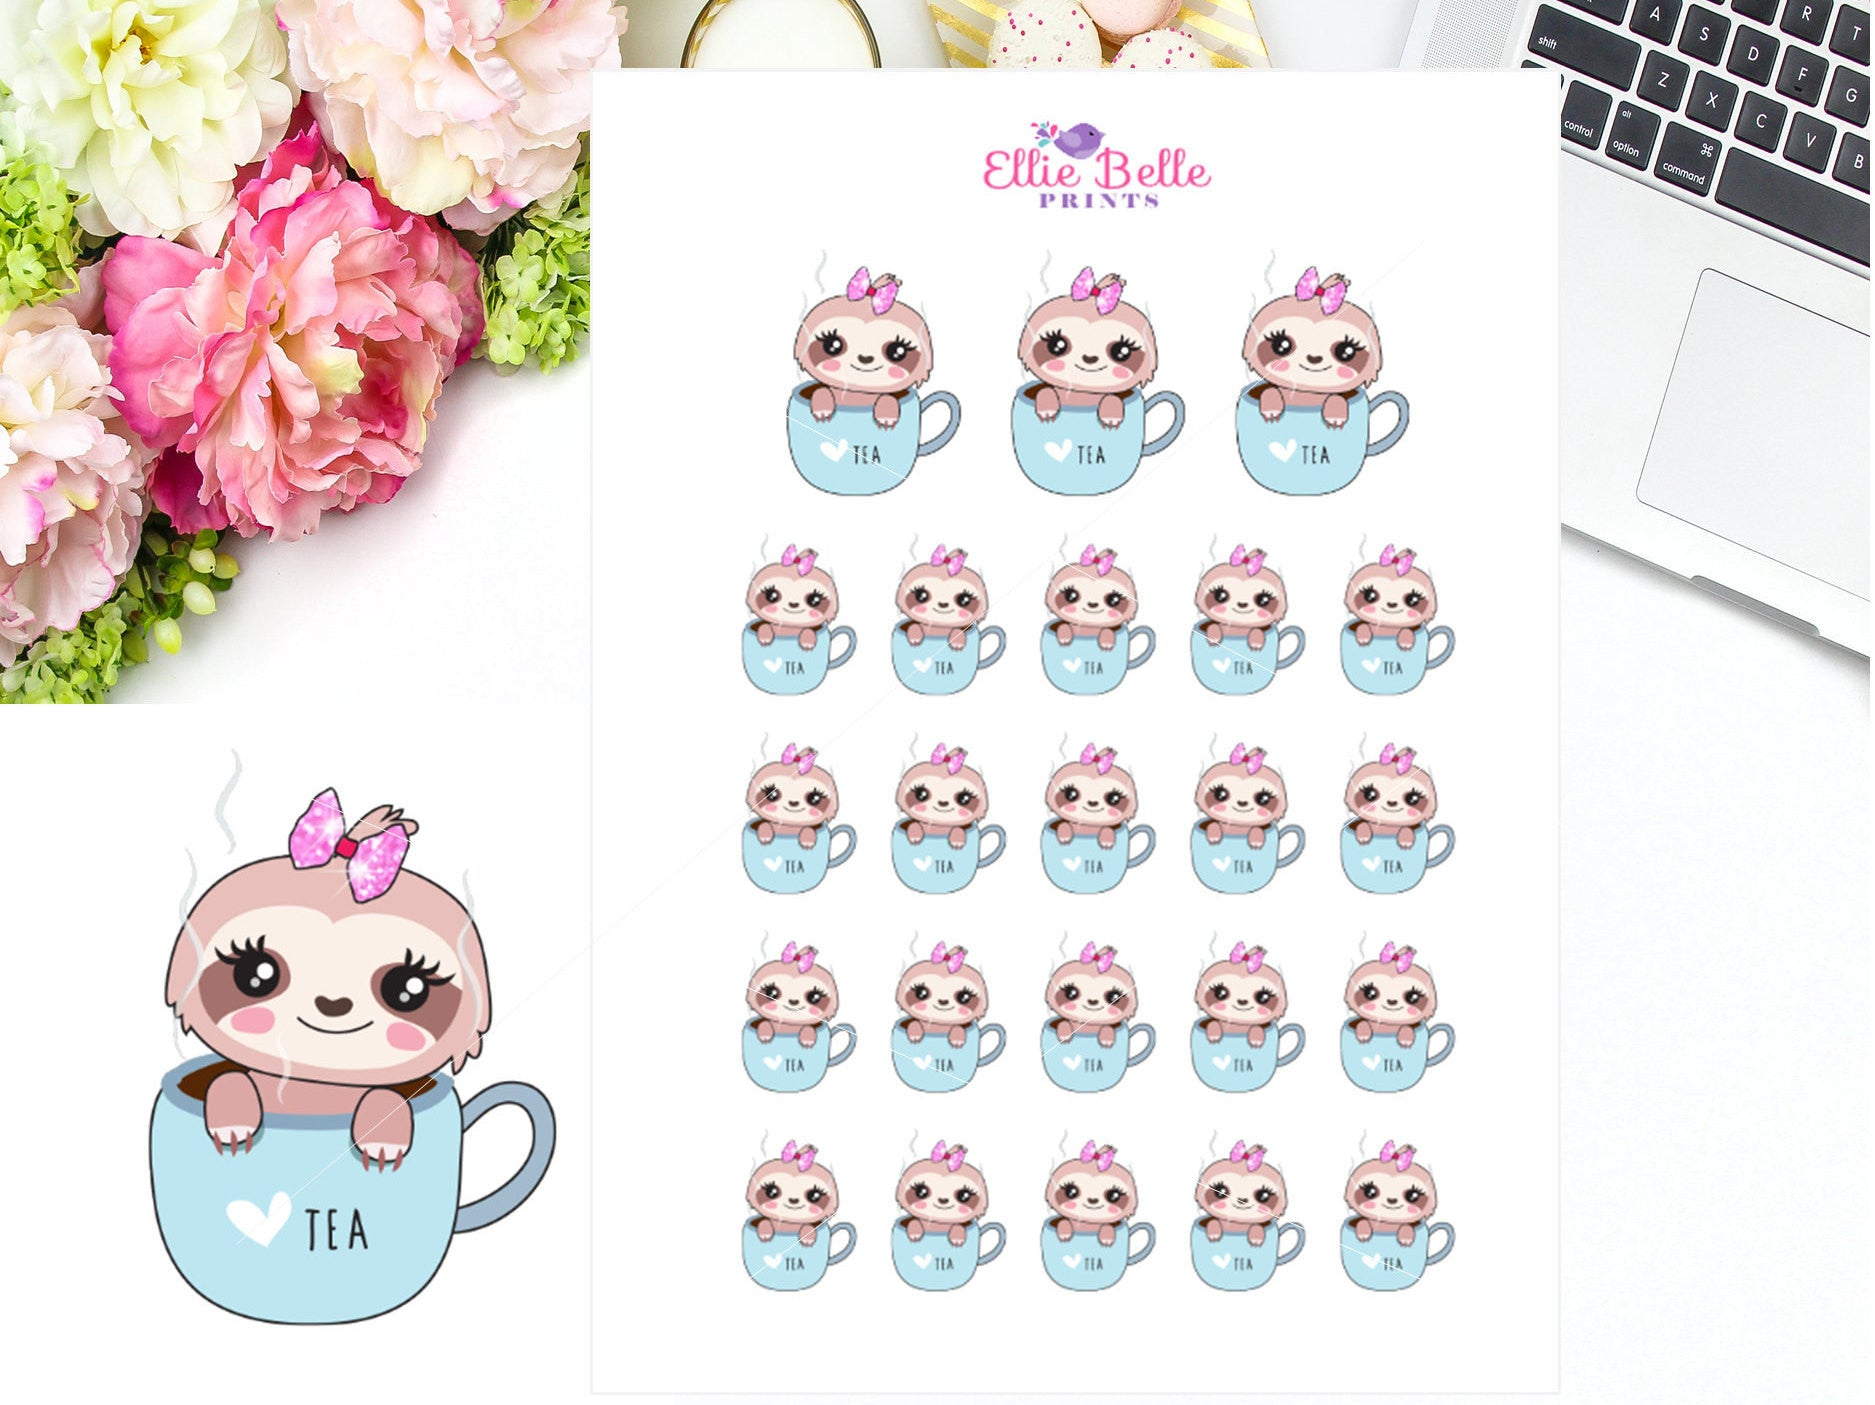 Tea Cup Stickers - Sloth 1 Collection